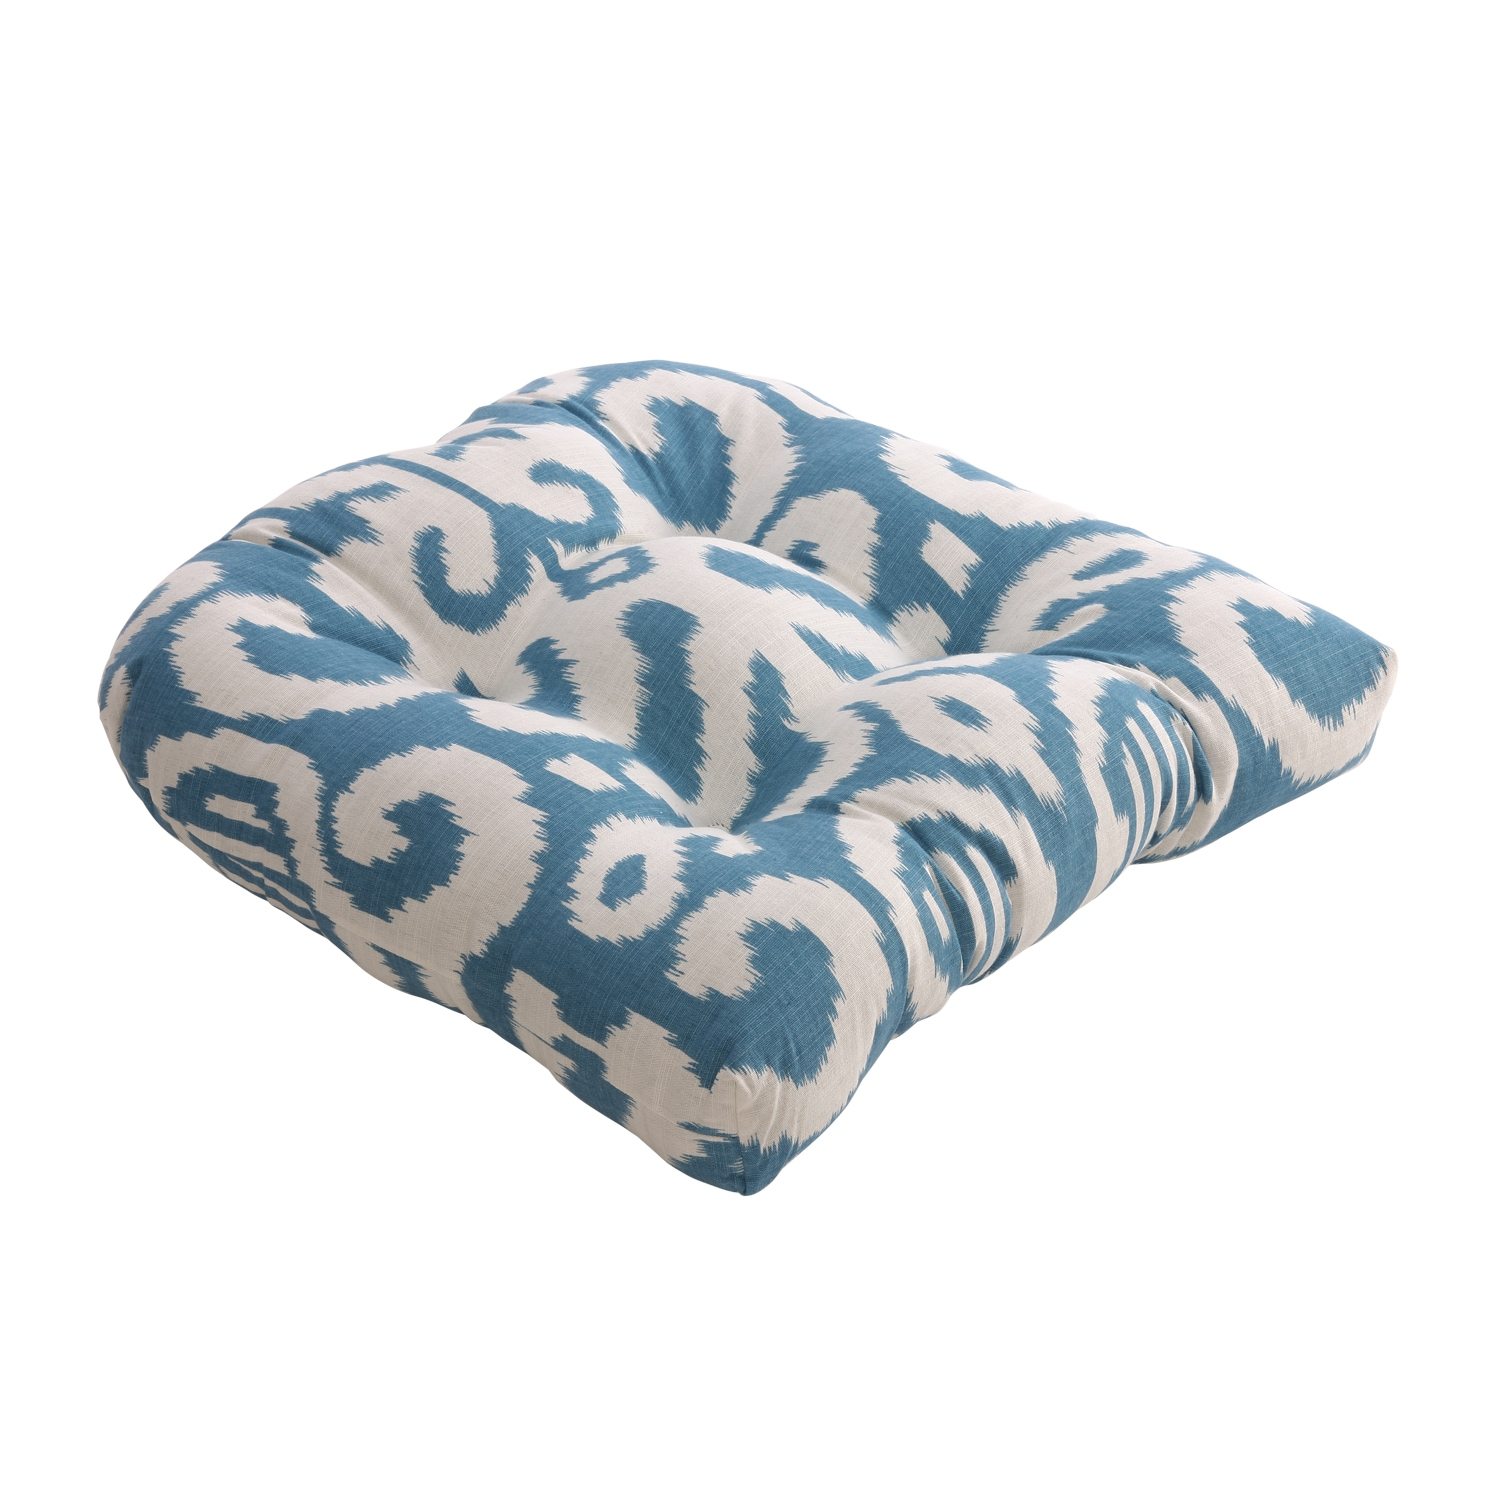 'Fergano' Aqua Chair Cushion